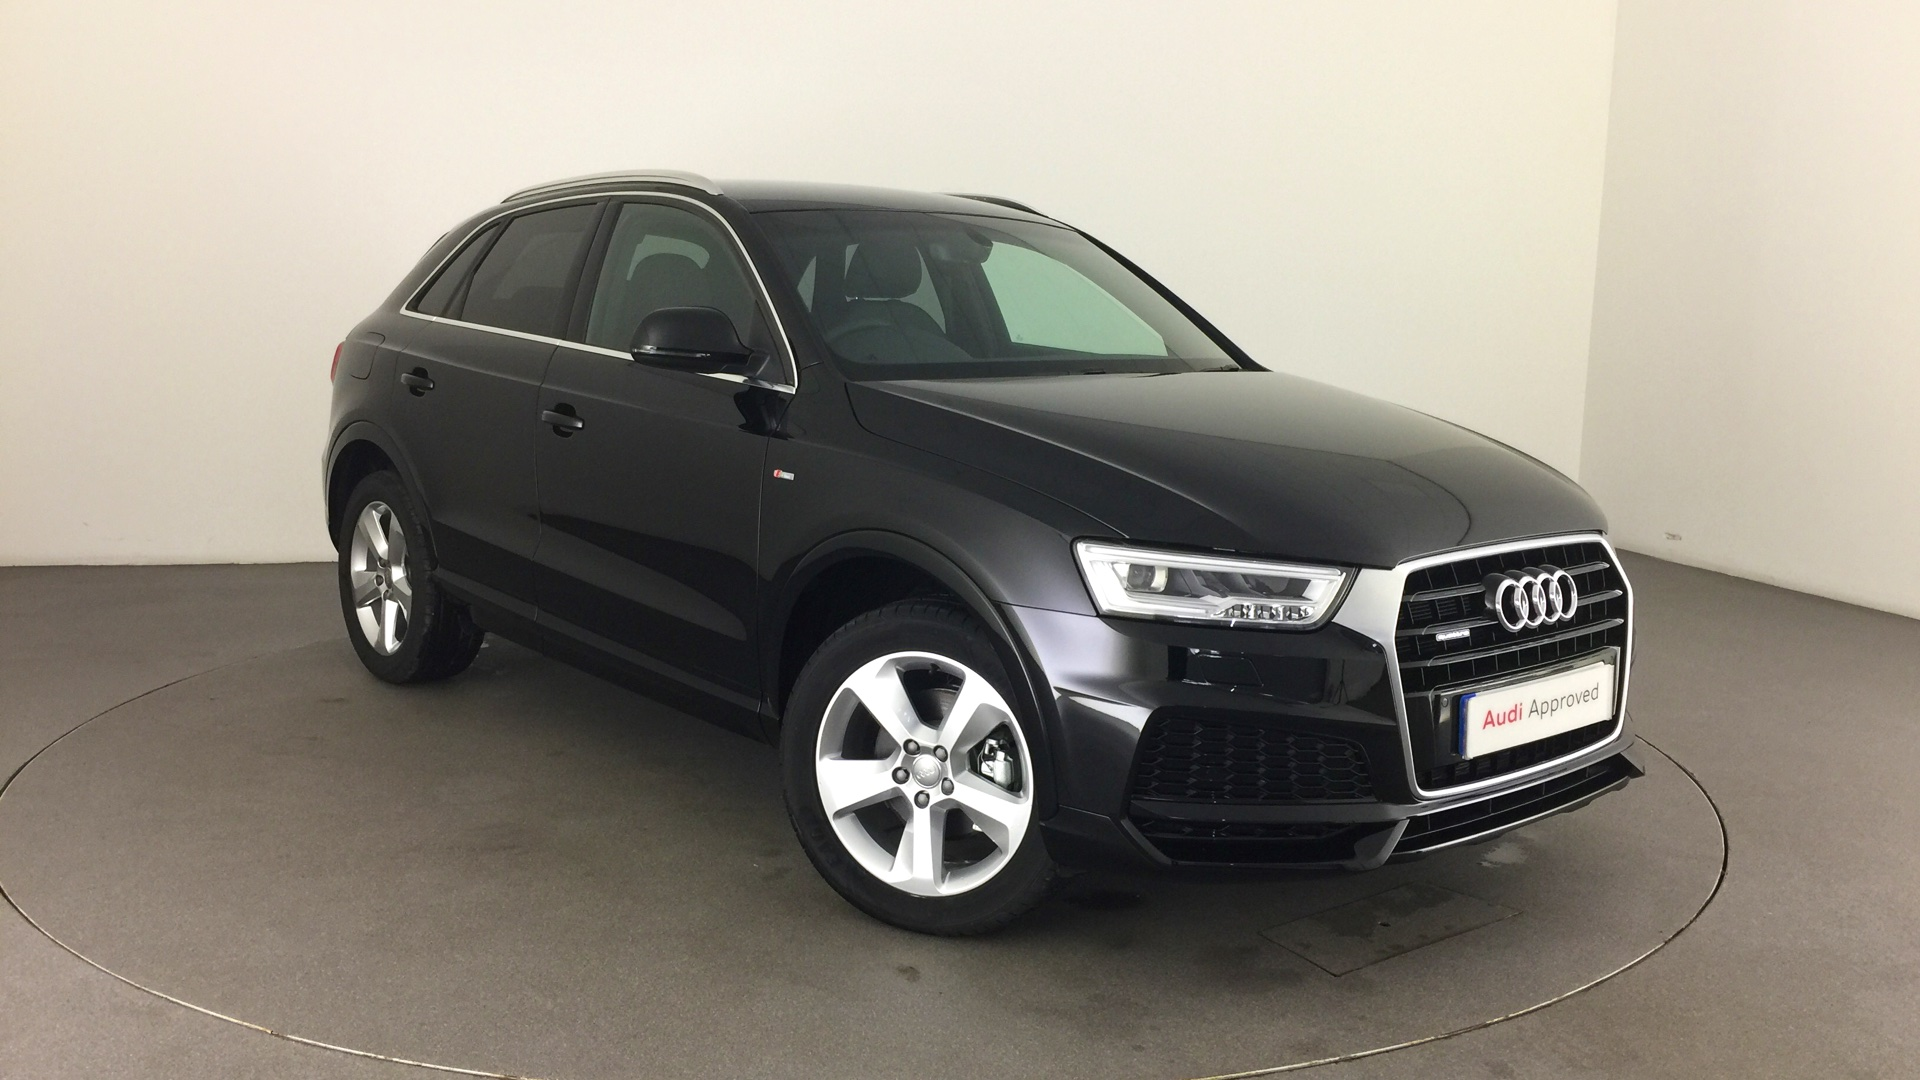 approved used audi q3 s line edition 2 0 tdi quattro 150 ps s tronic hg67ojc 30 000. Black Bedroom Furniture Sets. Home Design Ideas